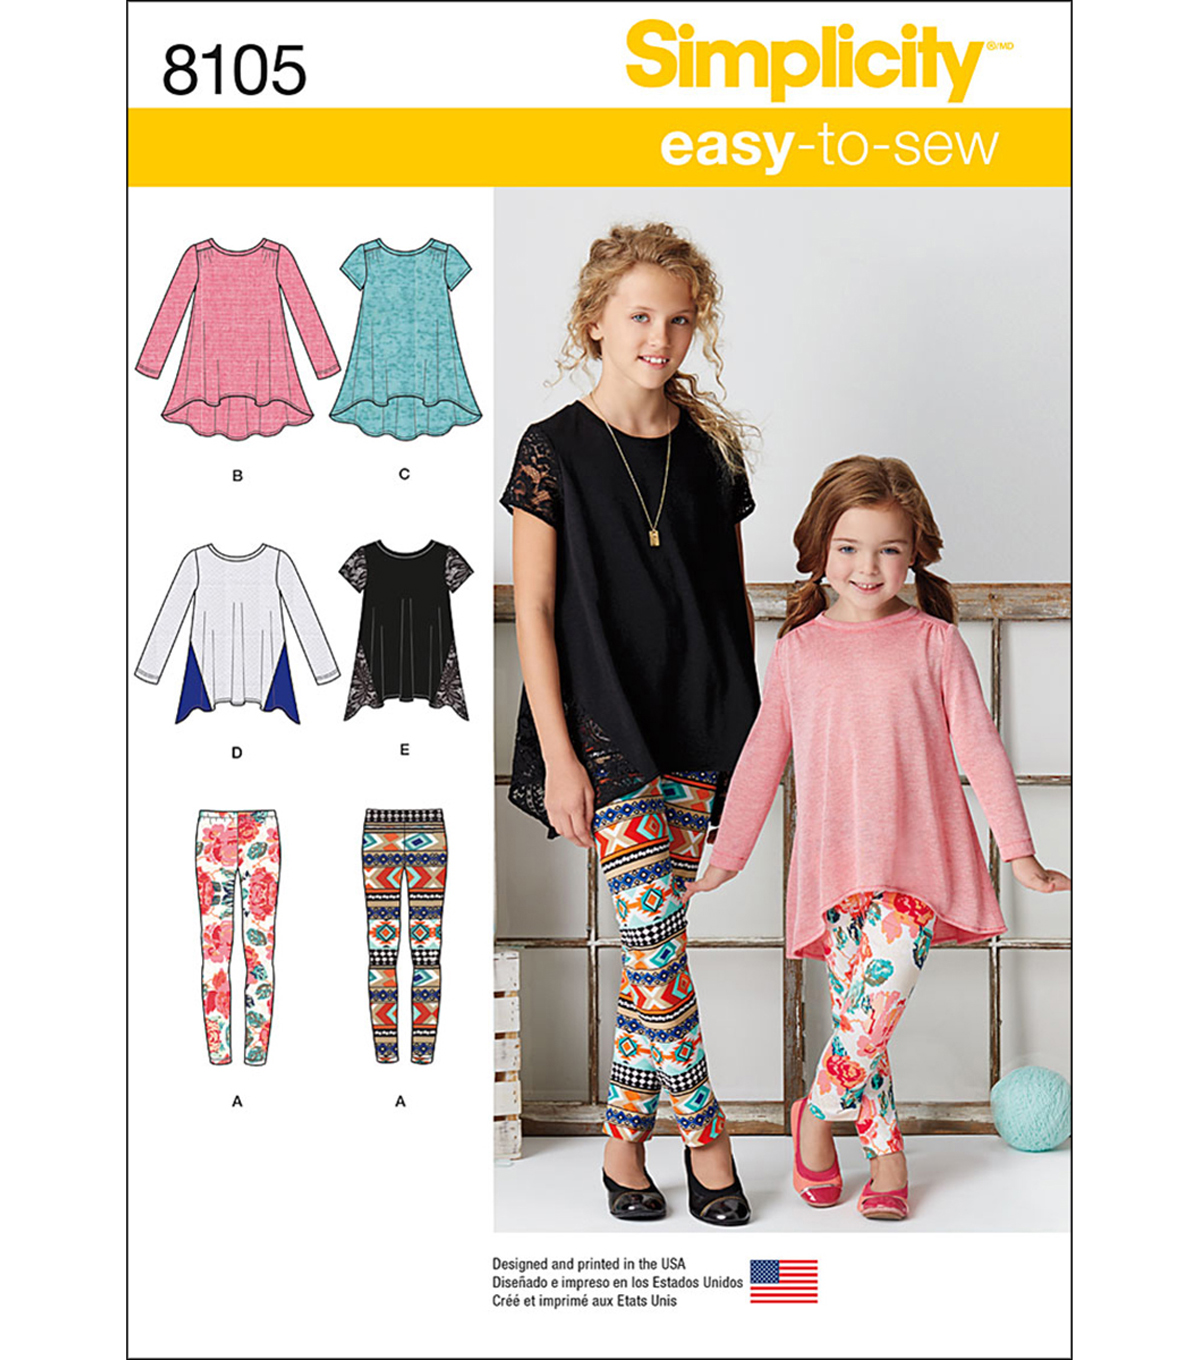 Simplicity Pajama Patterns Magnificent Inspiration